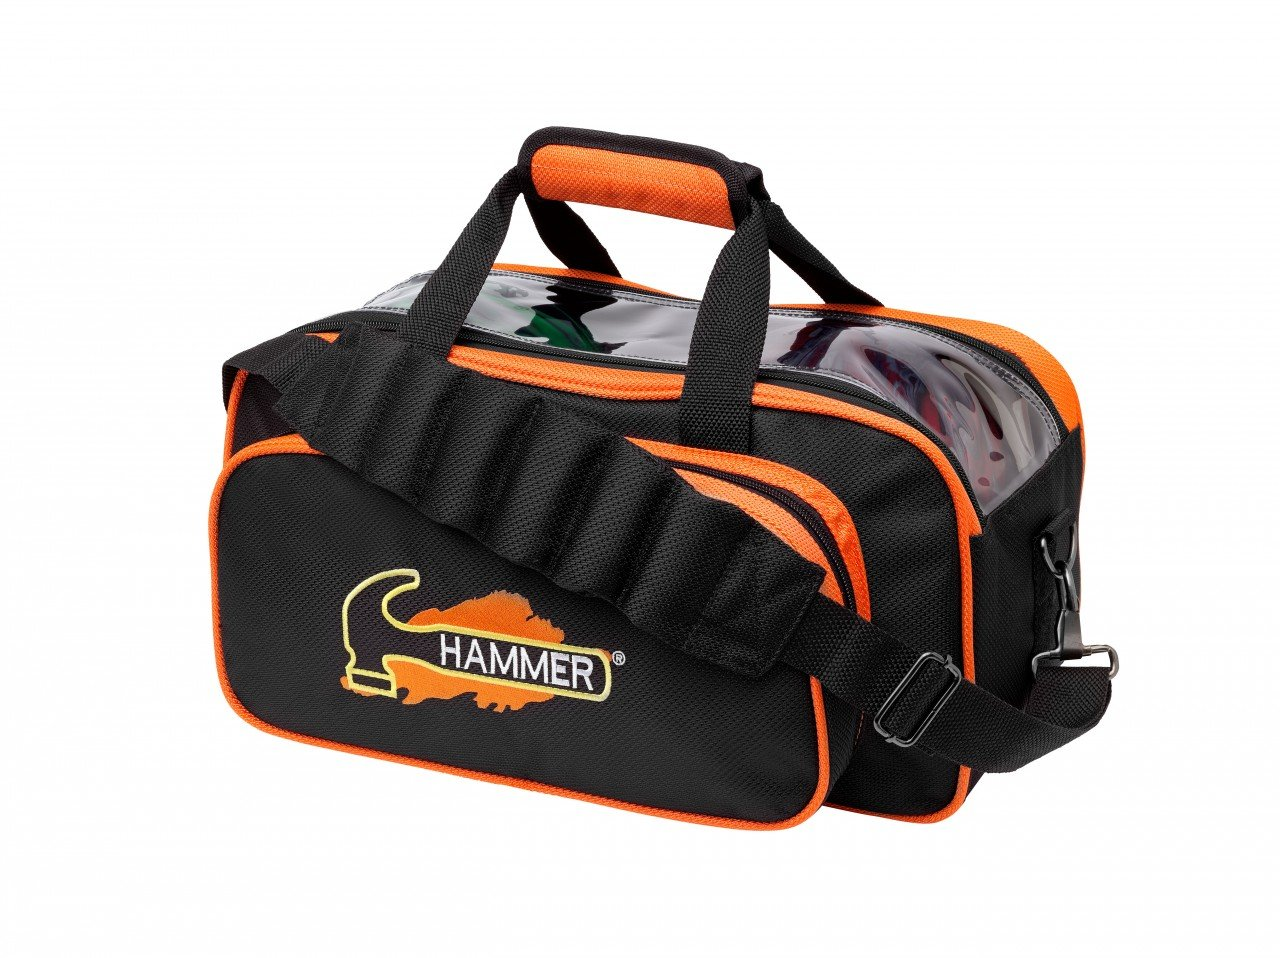 Hammer Double Bowling Ball Tote, Black/Orange by Hammer